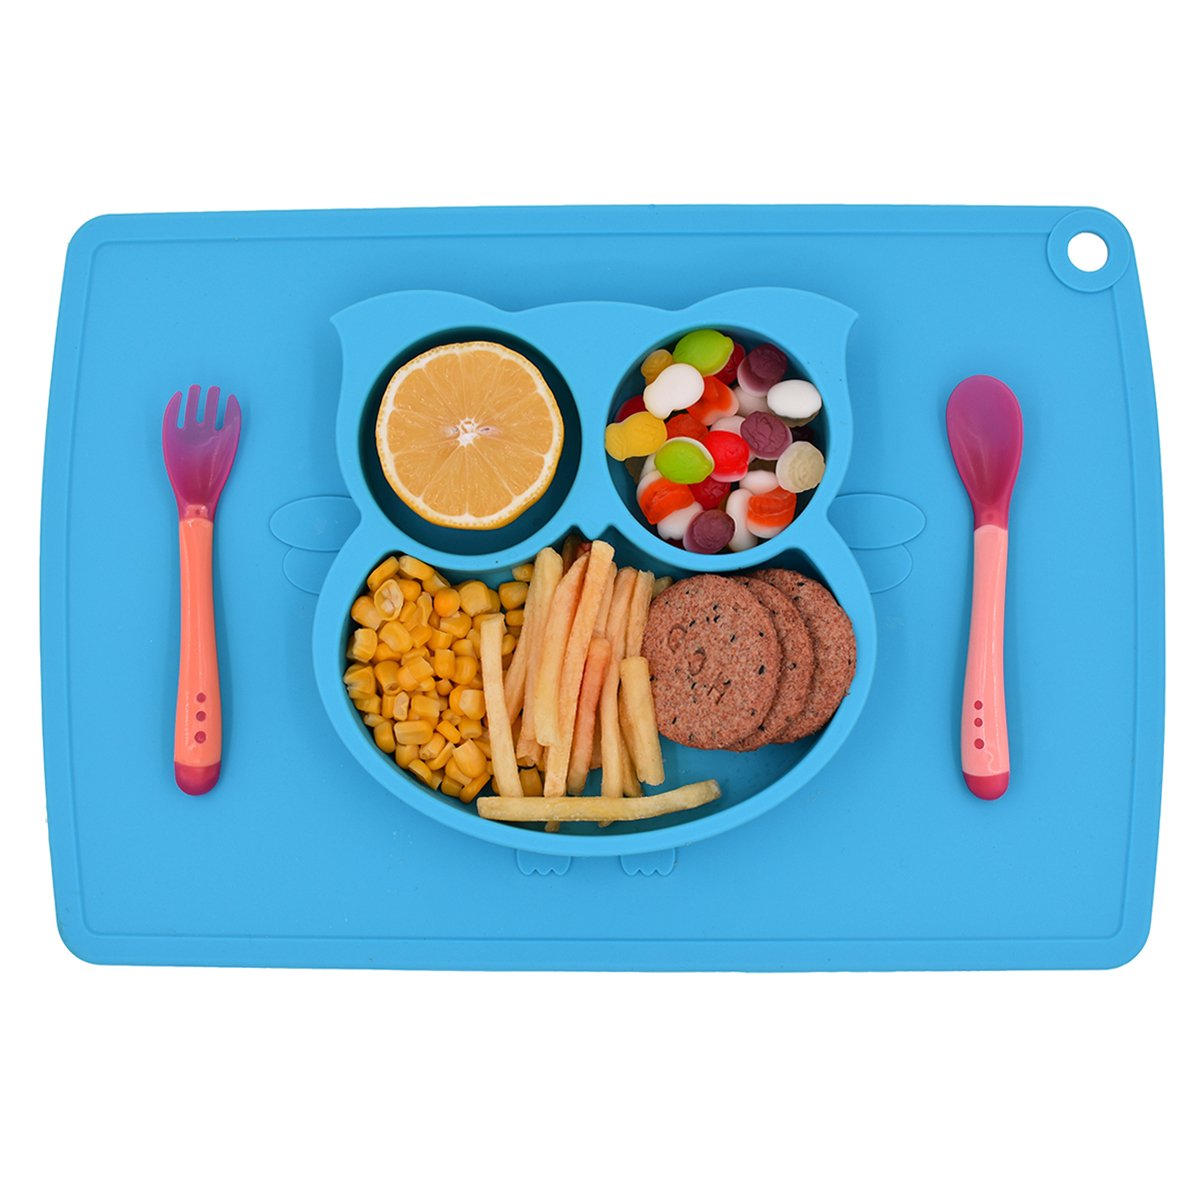 Silicone Baby Placemat, One-Piece Suction Child Feeding Mat with Spoon and Fork included, Baby Table Place Mat for Toddlers,Infants and Kids (Blue)